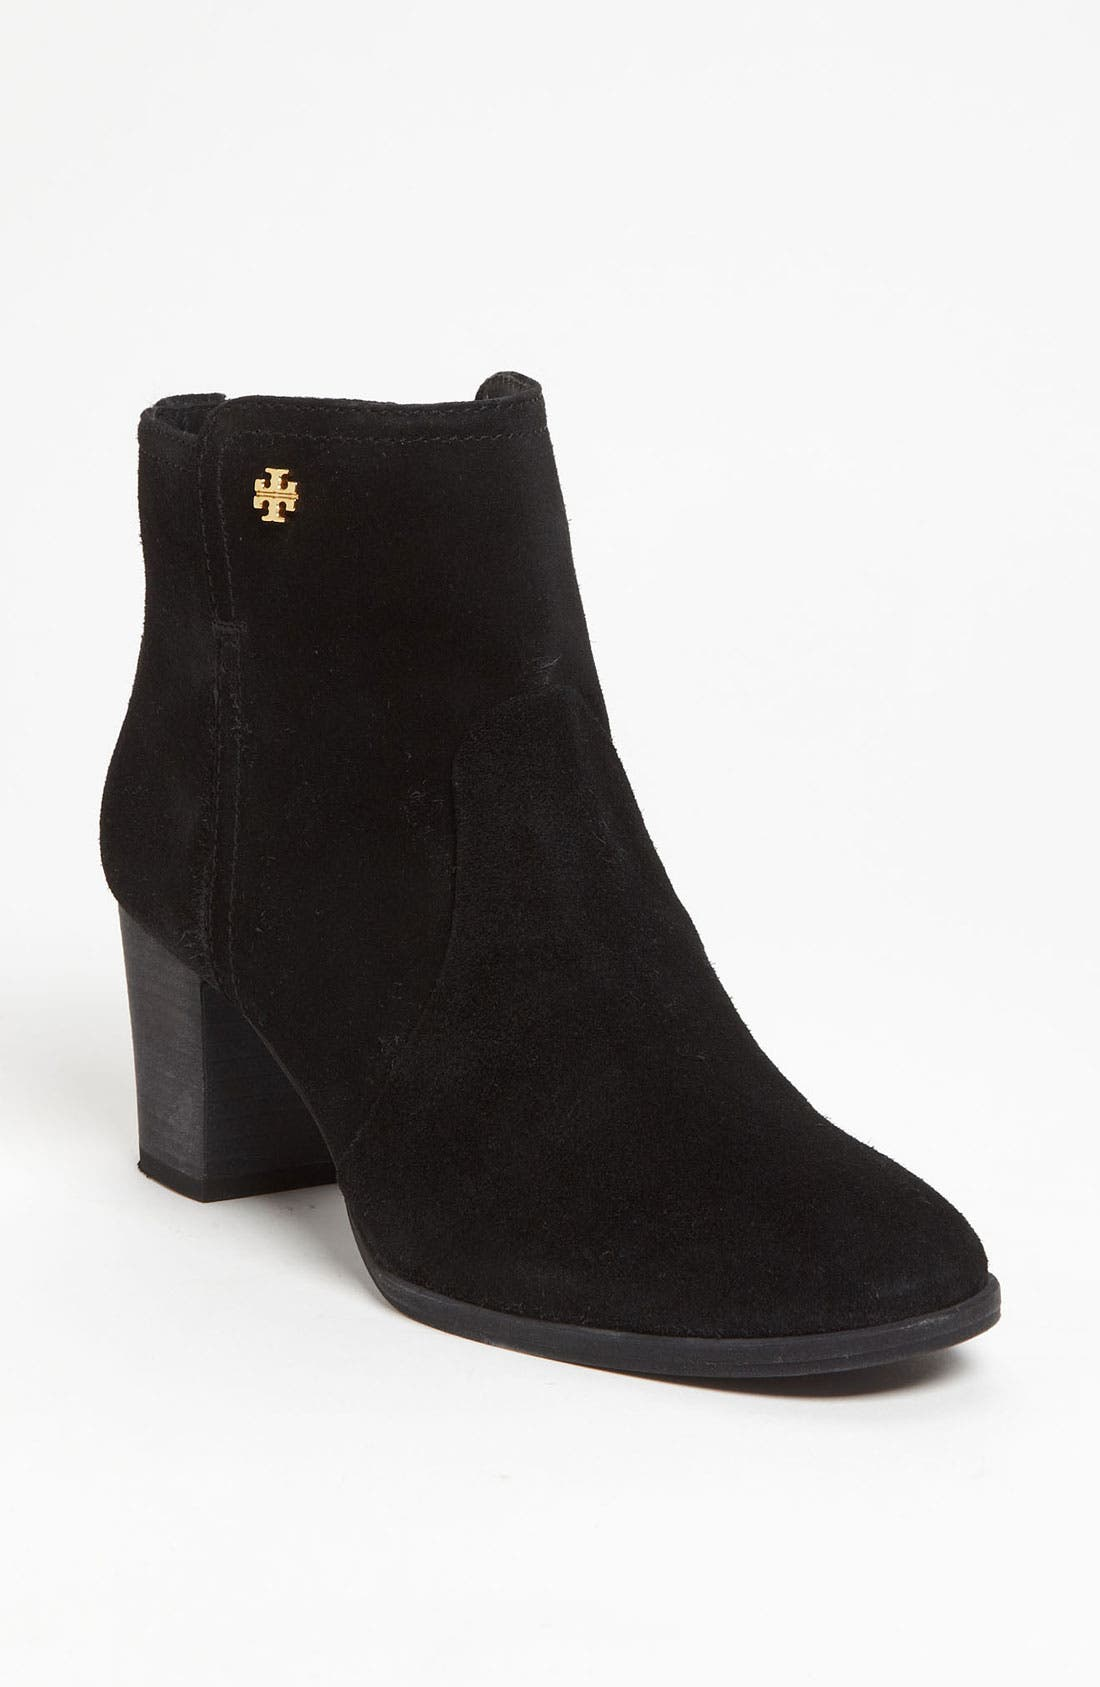 Tory Burch 'Sabe' Bootie   Nordstrom